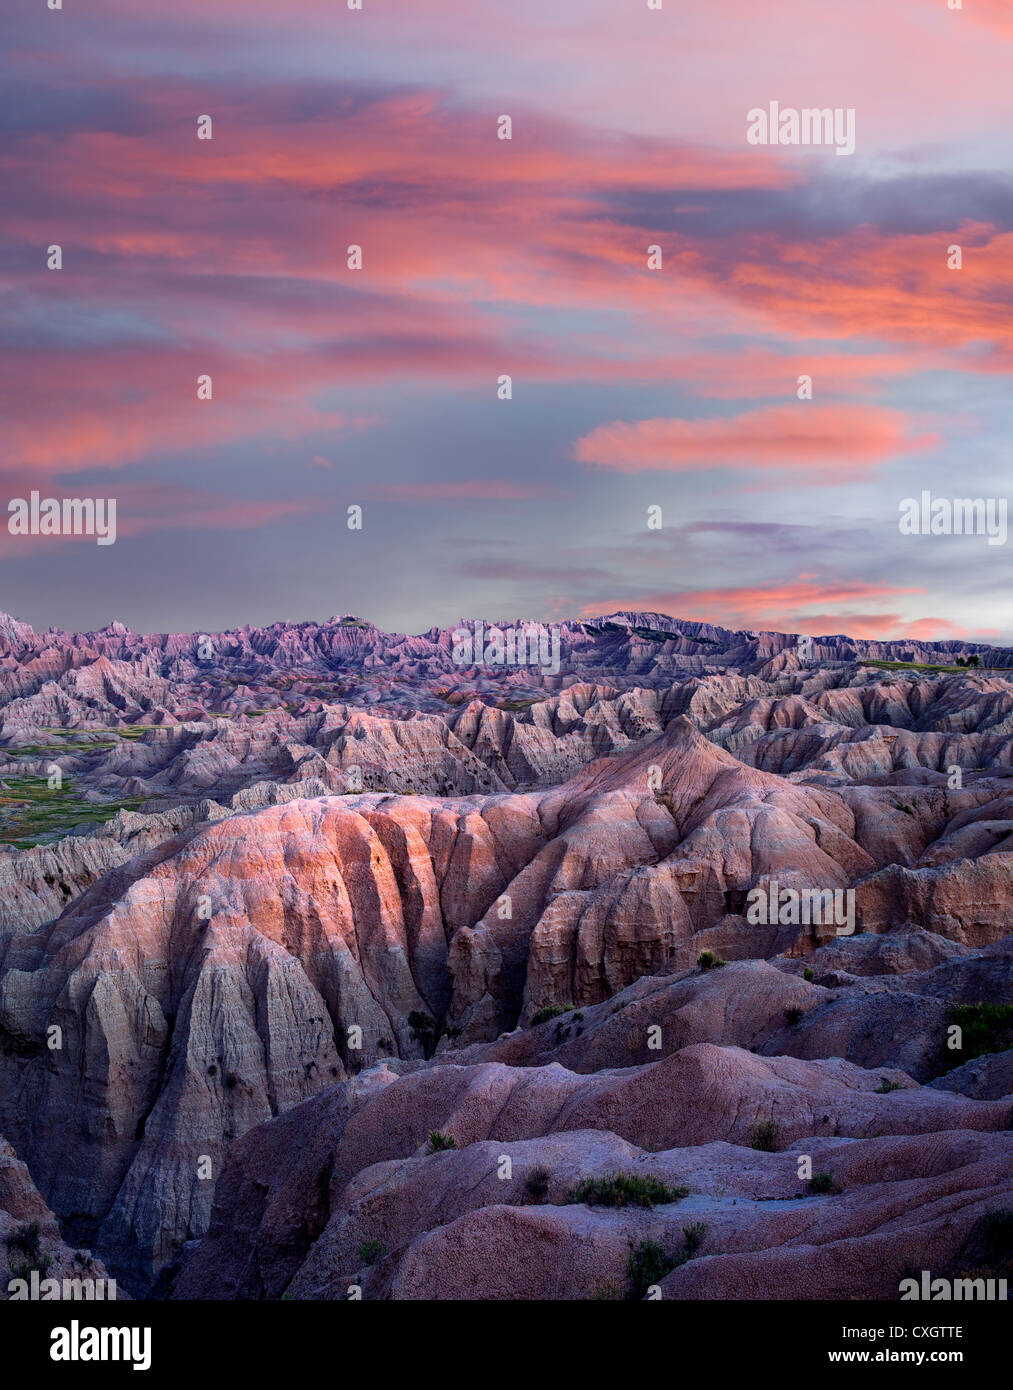 Bunte Formationen in Badlands Nationalpark, South Dakota Stockfoto